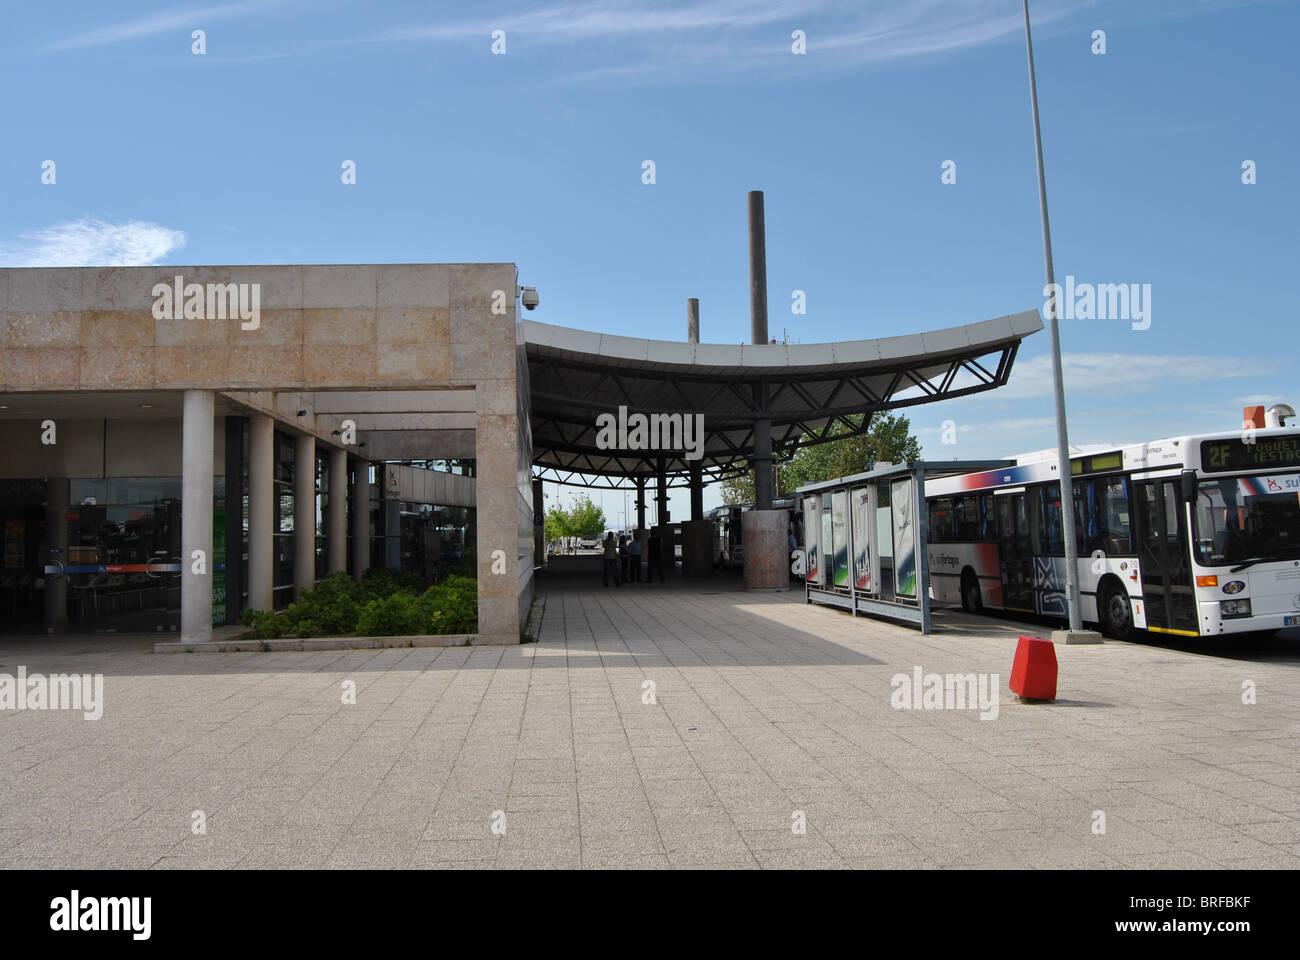 Outdoor view Fogueteiro Train and Bus Station, Seixal, Portugal - Stock Image